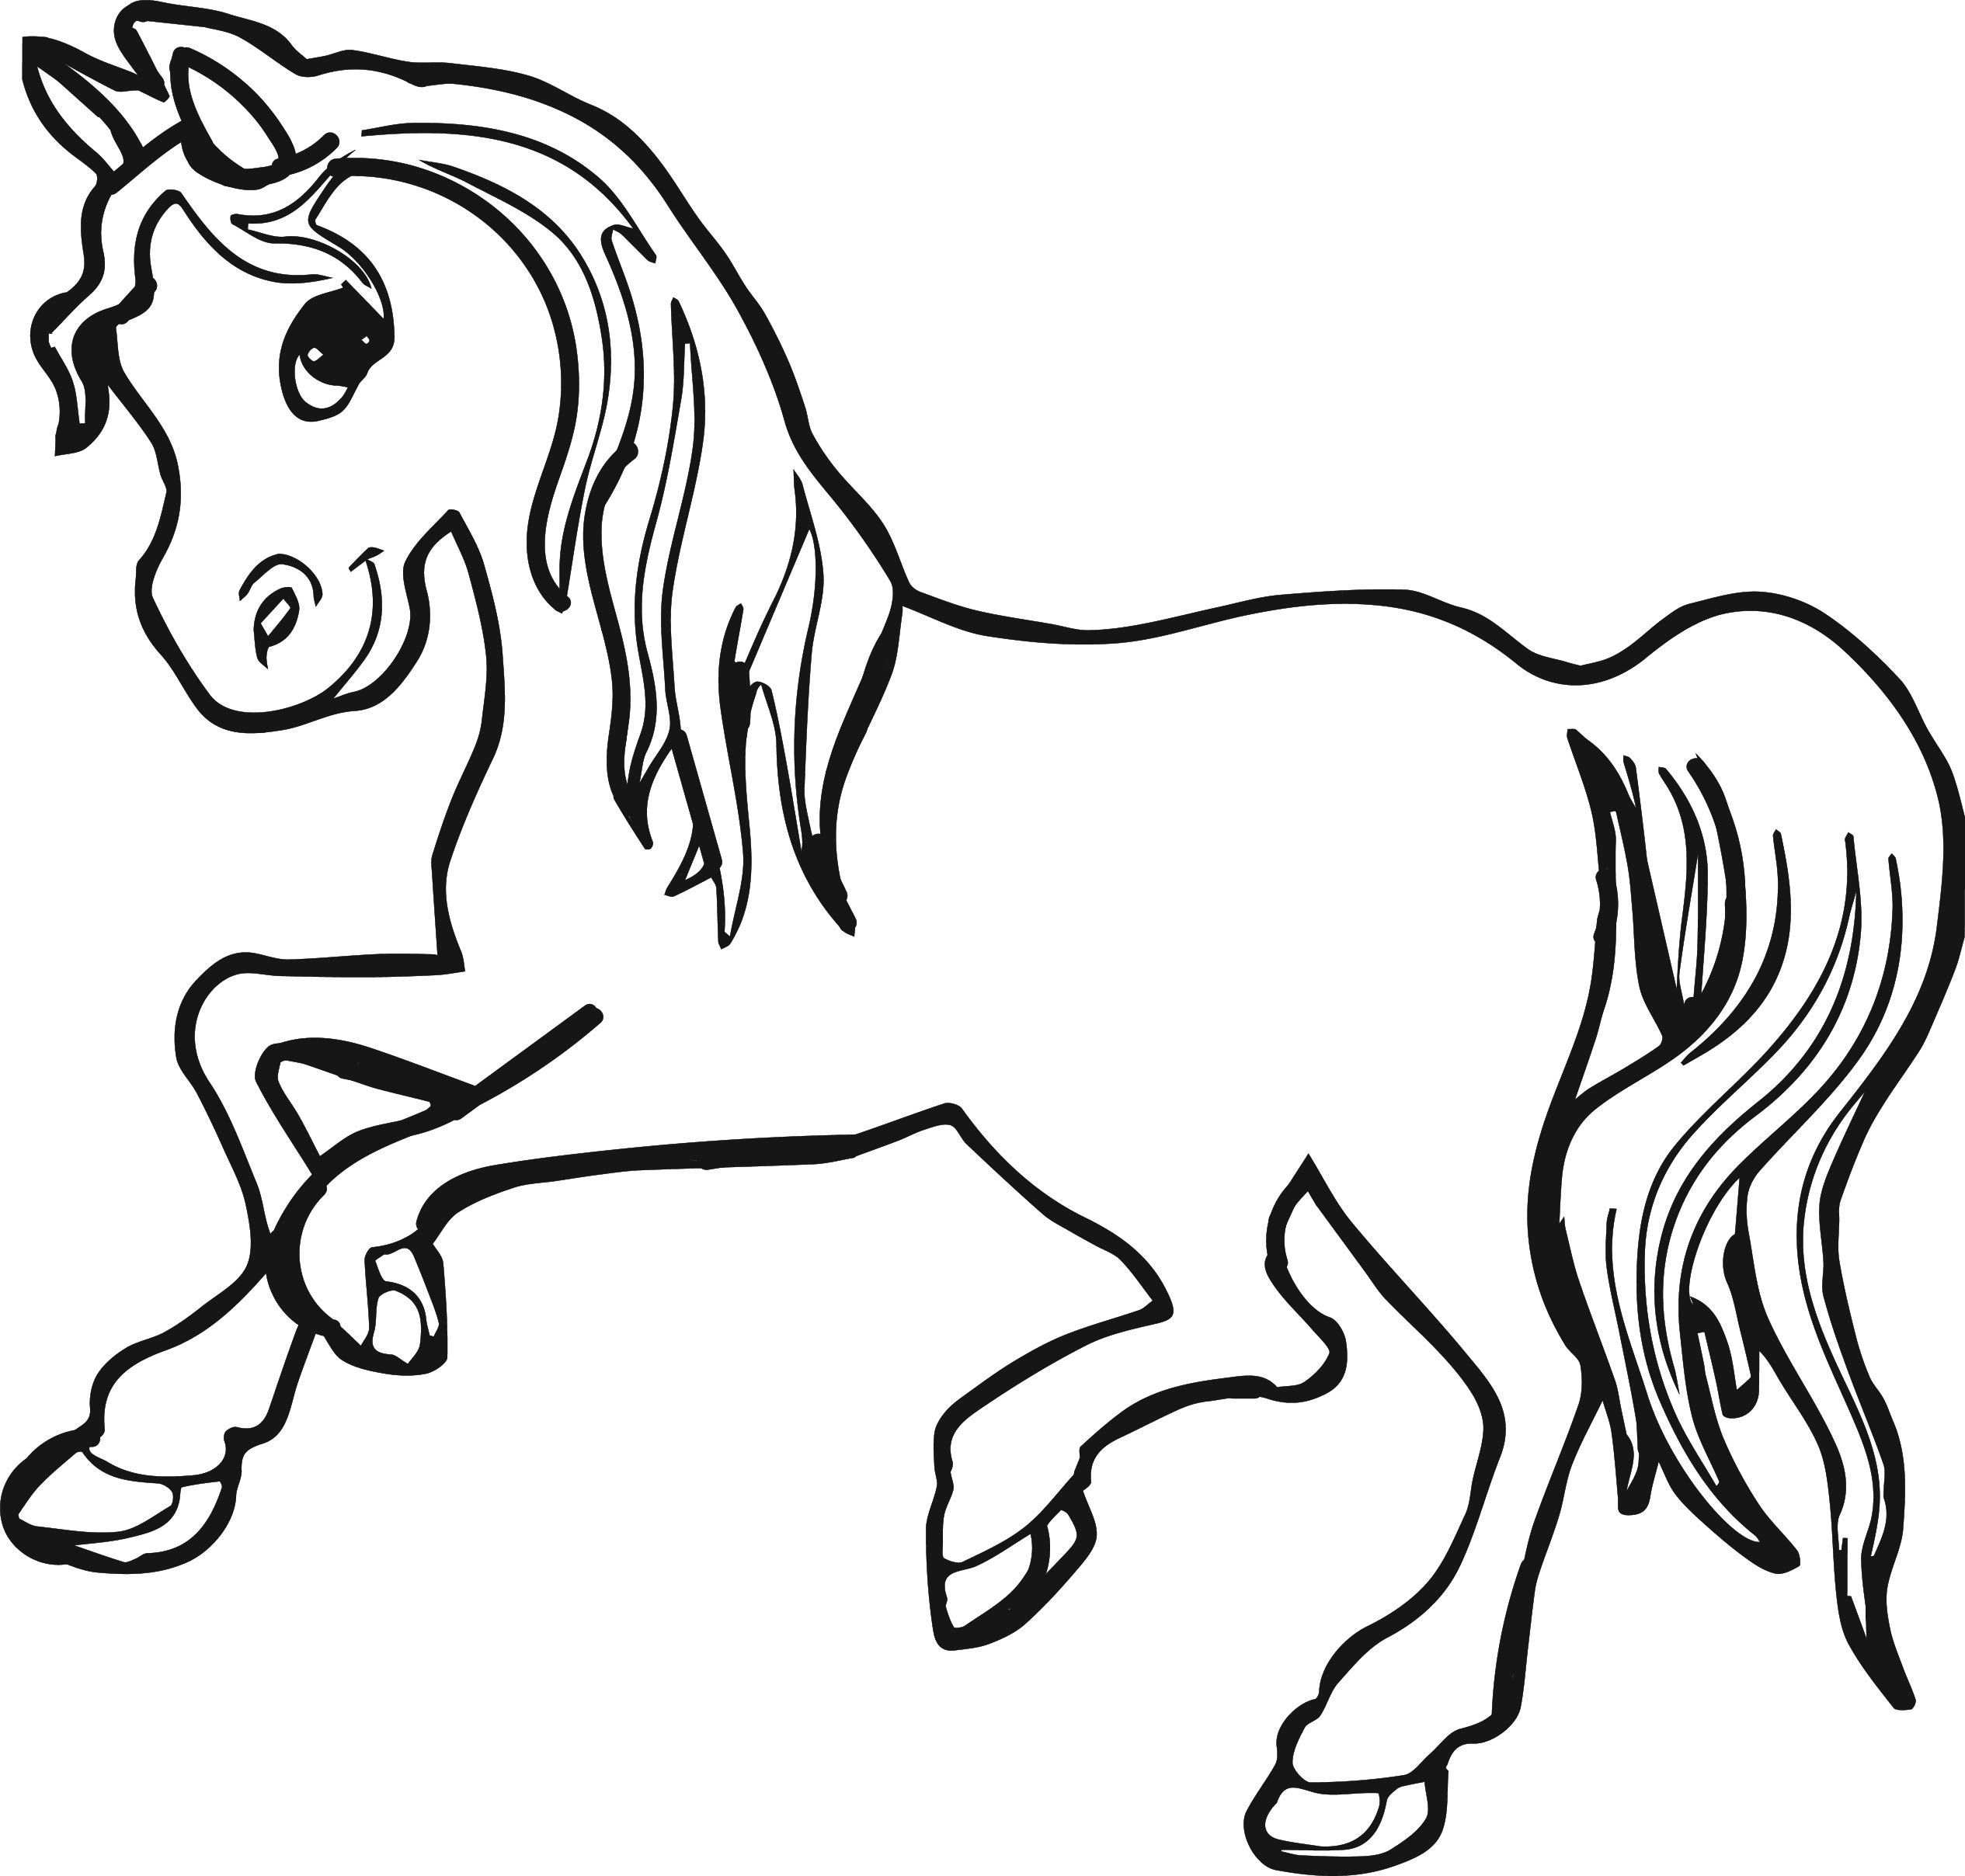 cool horse coloring pages impressive horses cool ideas coloring page  free coloring pages horse cool coloring